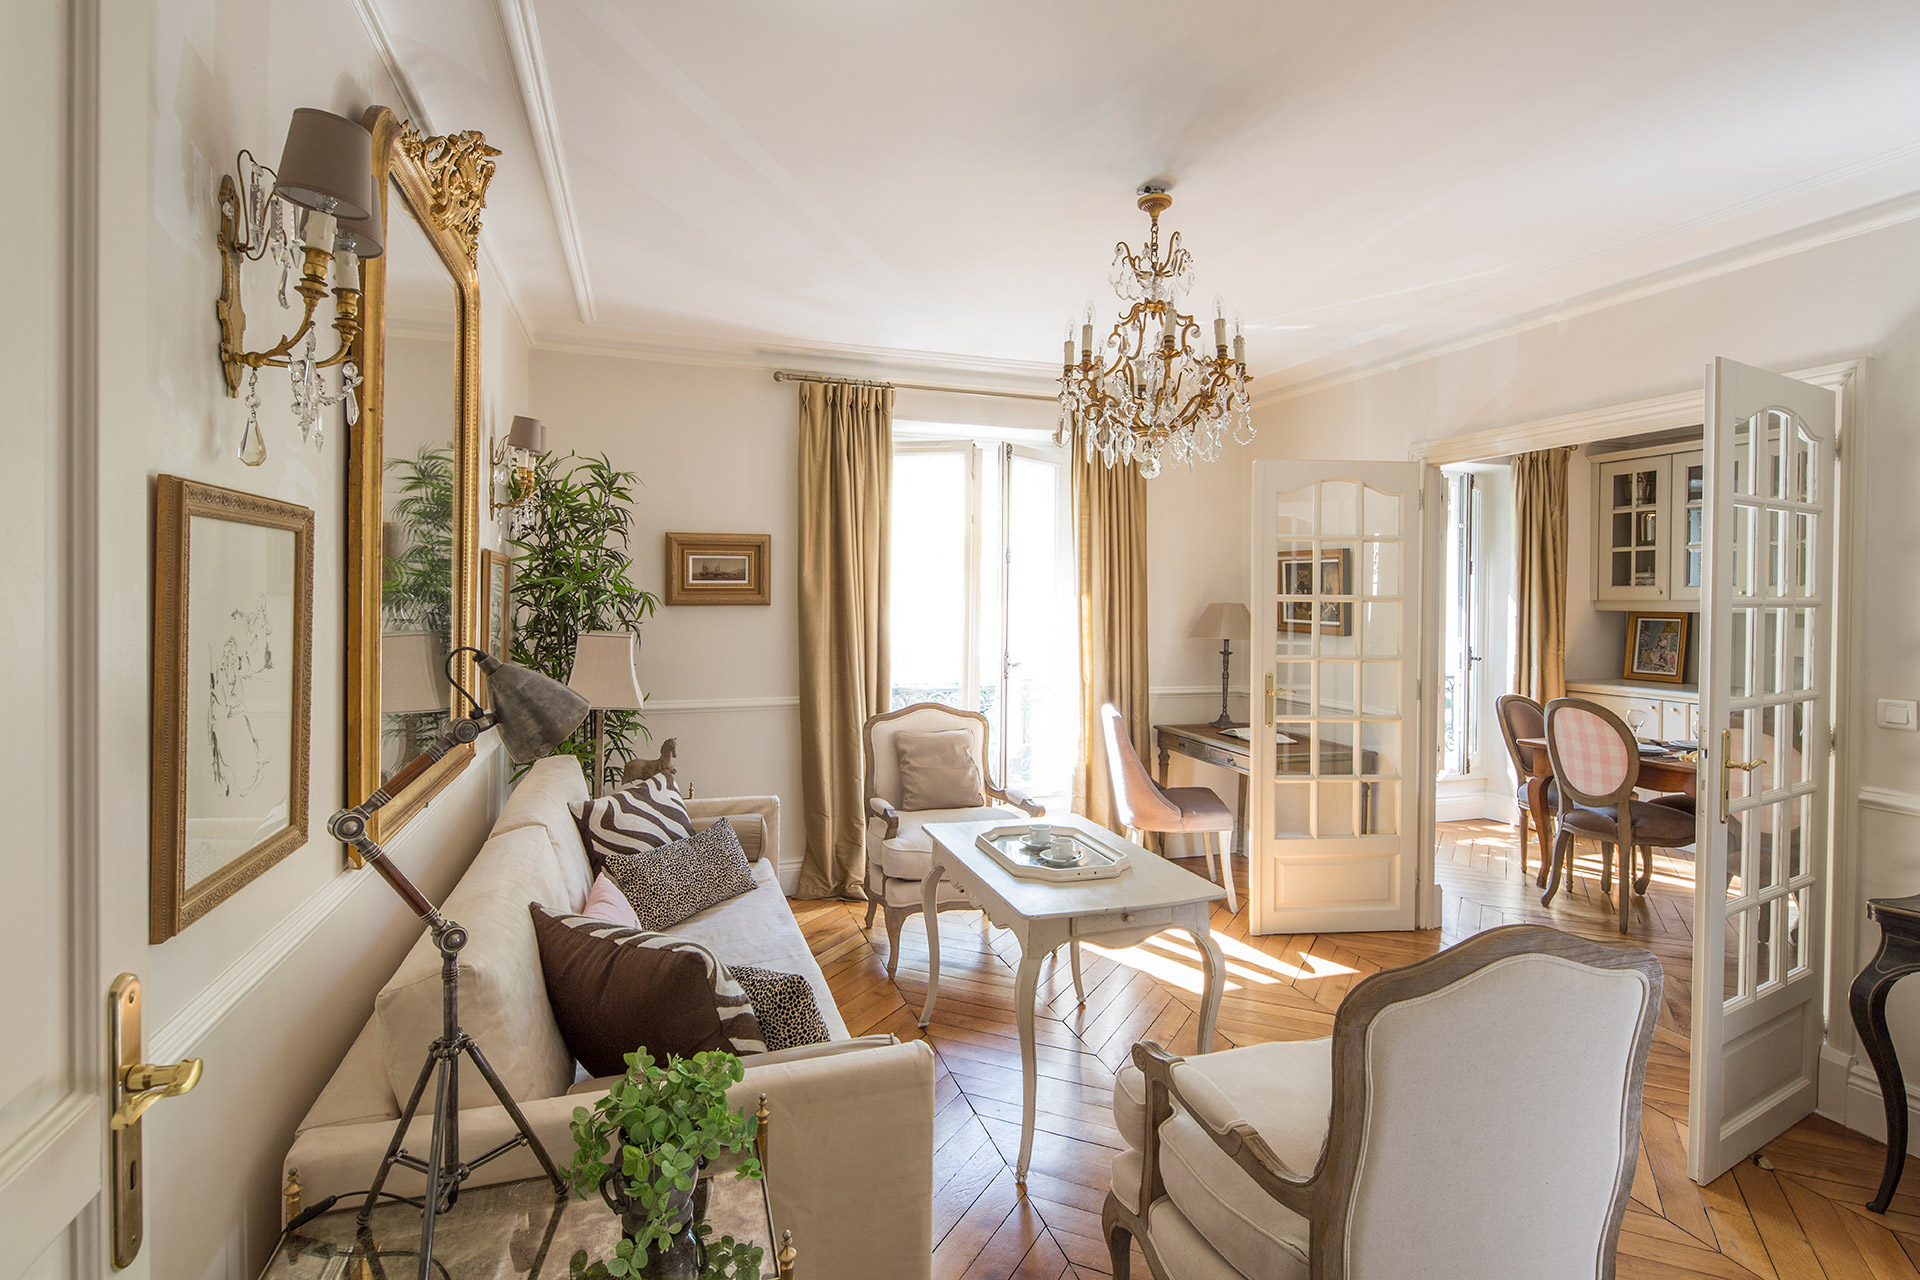 Awesome 2 Bedroom Paris Apartment Rental In The 7th Arrondissement